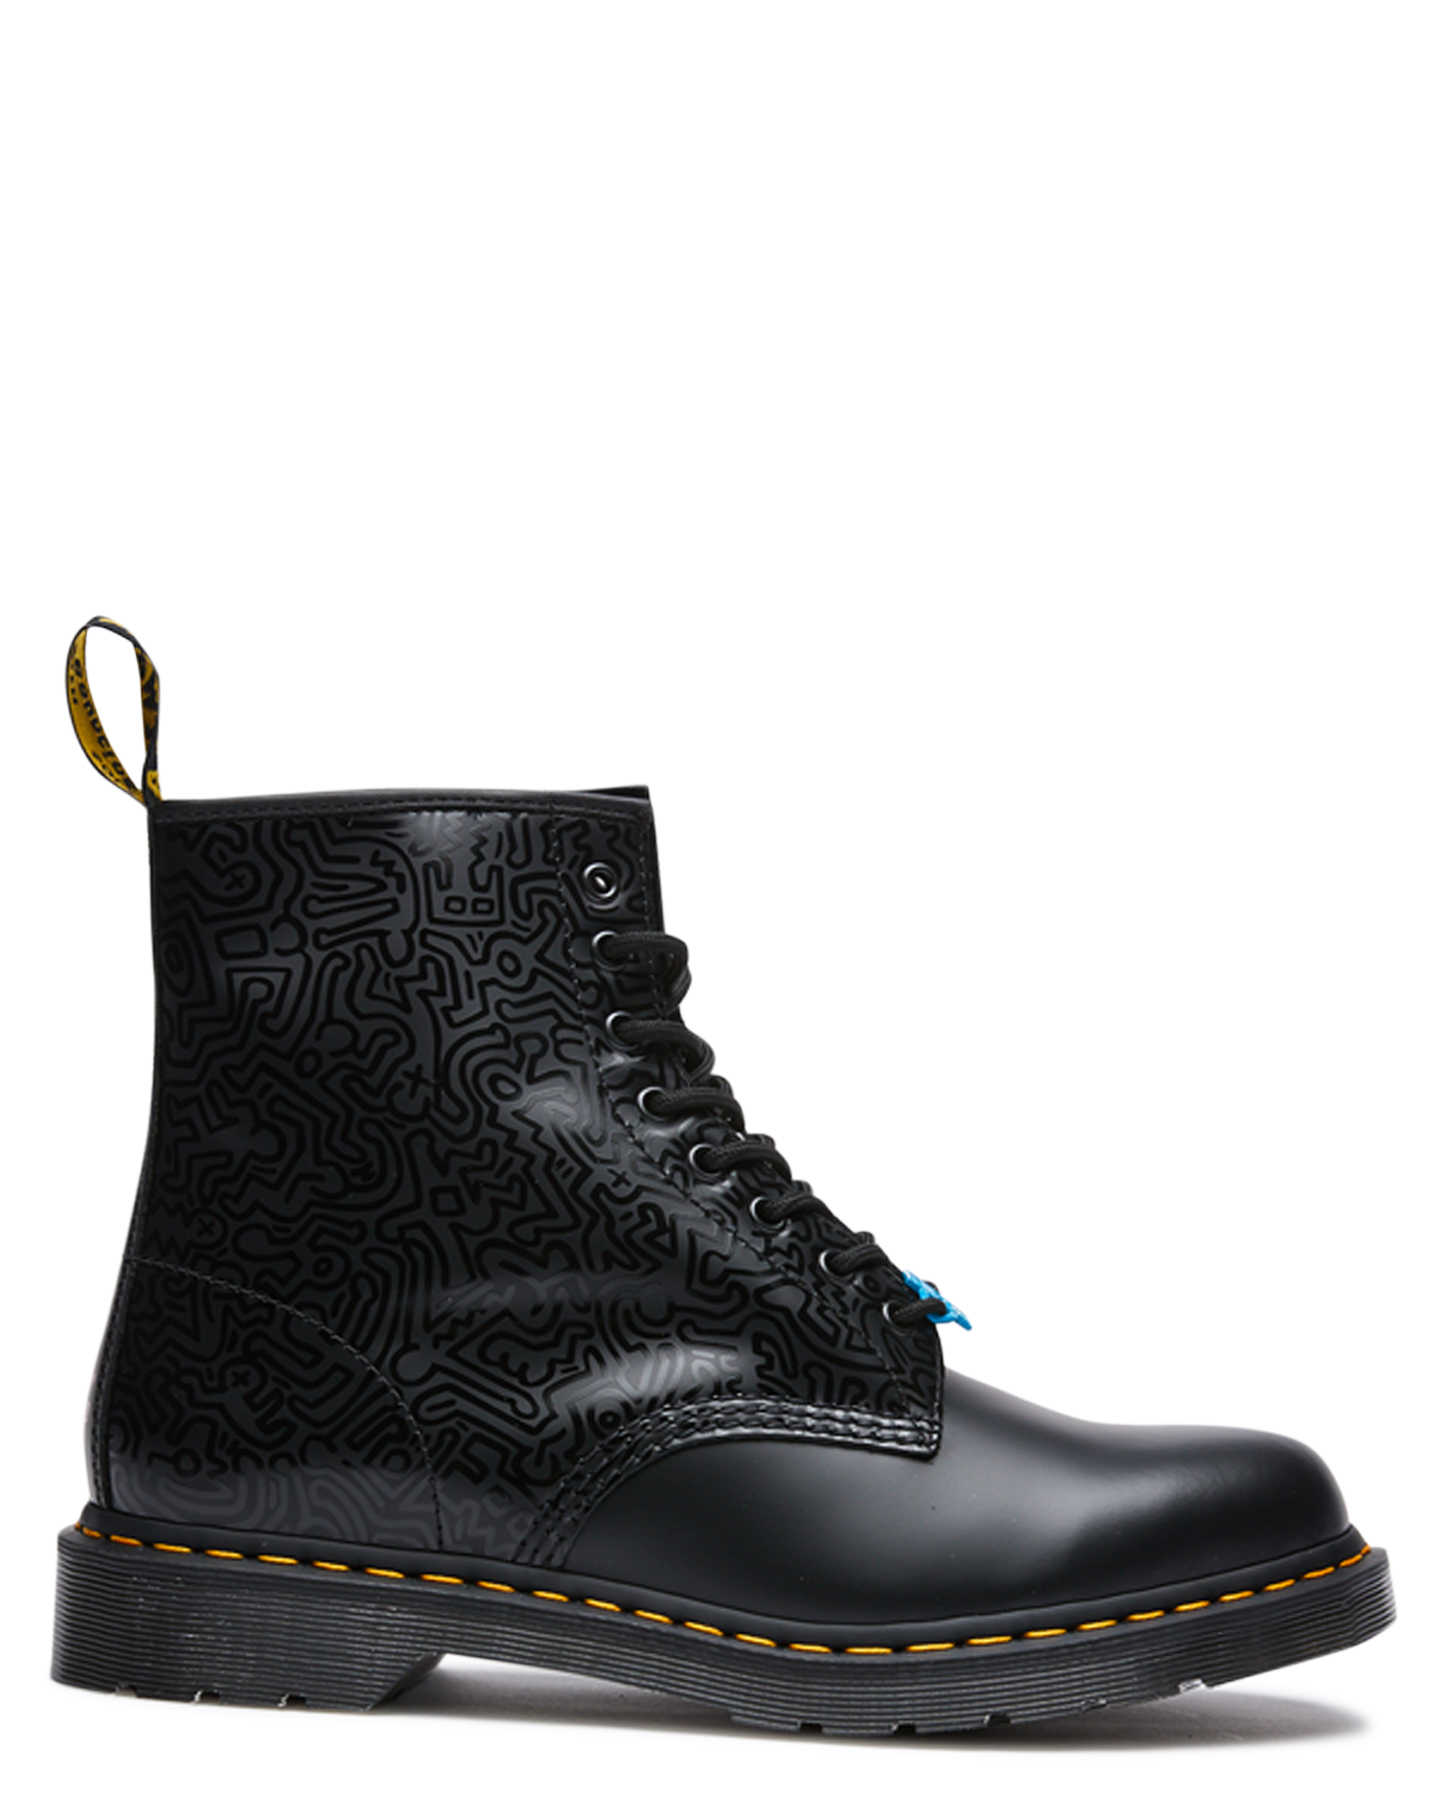 Dr. Martens Womens X Keith Haring 1460 Boot Black